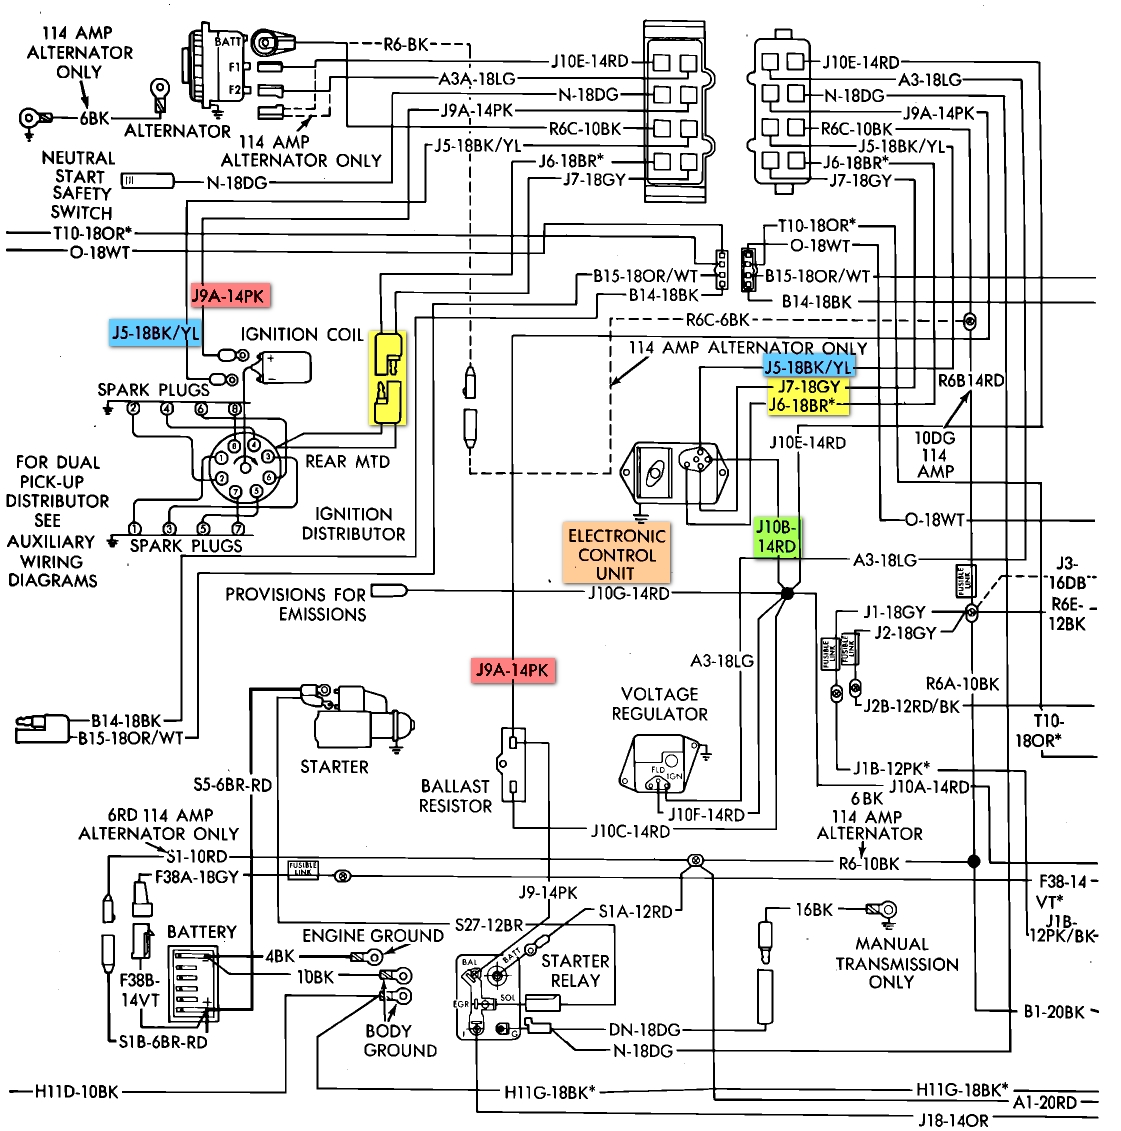 Winnebago Motorhome Wiring Diagram | Free Wiring Diagram